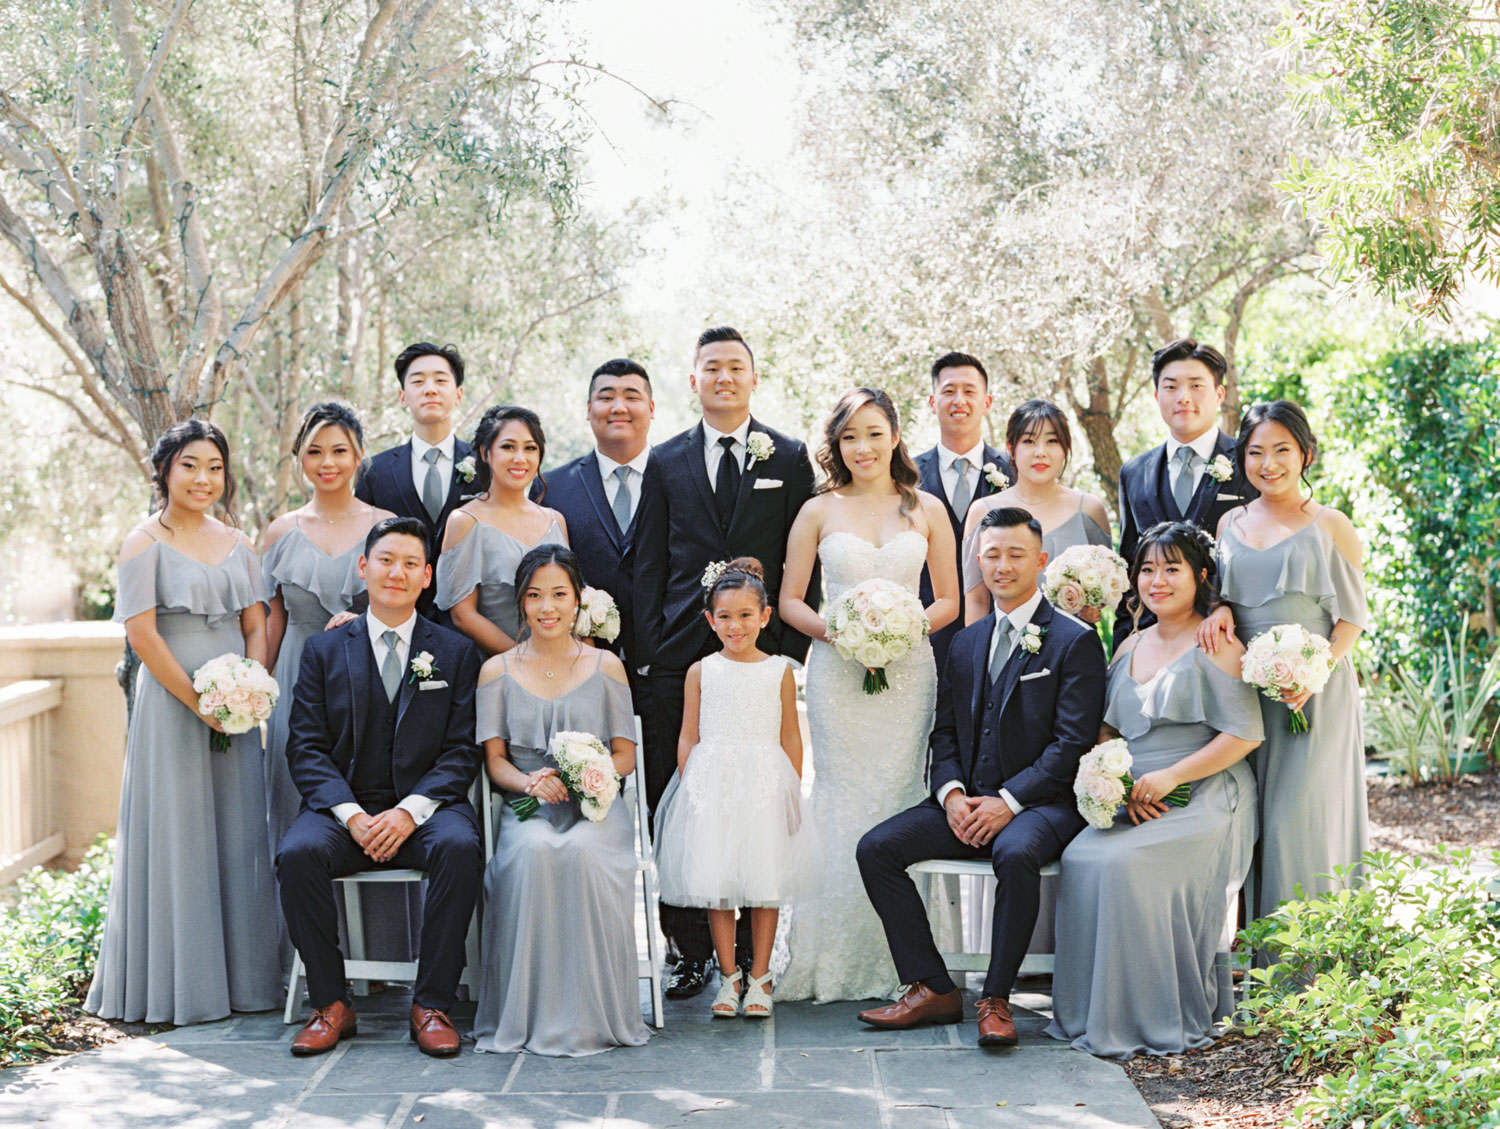 Bridal party portrait with groom in black tux and groomsmen in navy suits. Bridesmaids in grey cut out sleeve gowns. Bride in a Martina Liana gown from the White Flower Bridal Boutique. Rancho Bernardo Inn wedding. Film photo by Cavin Elizabeth Photography